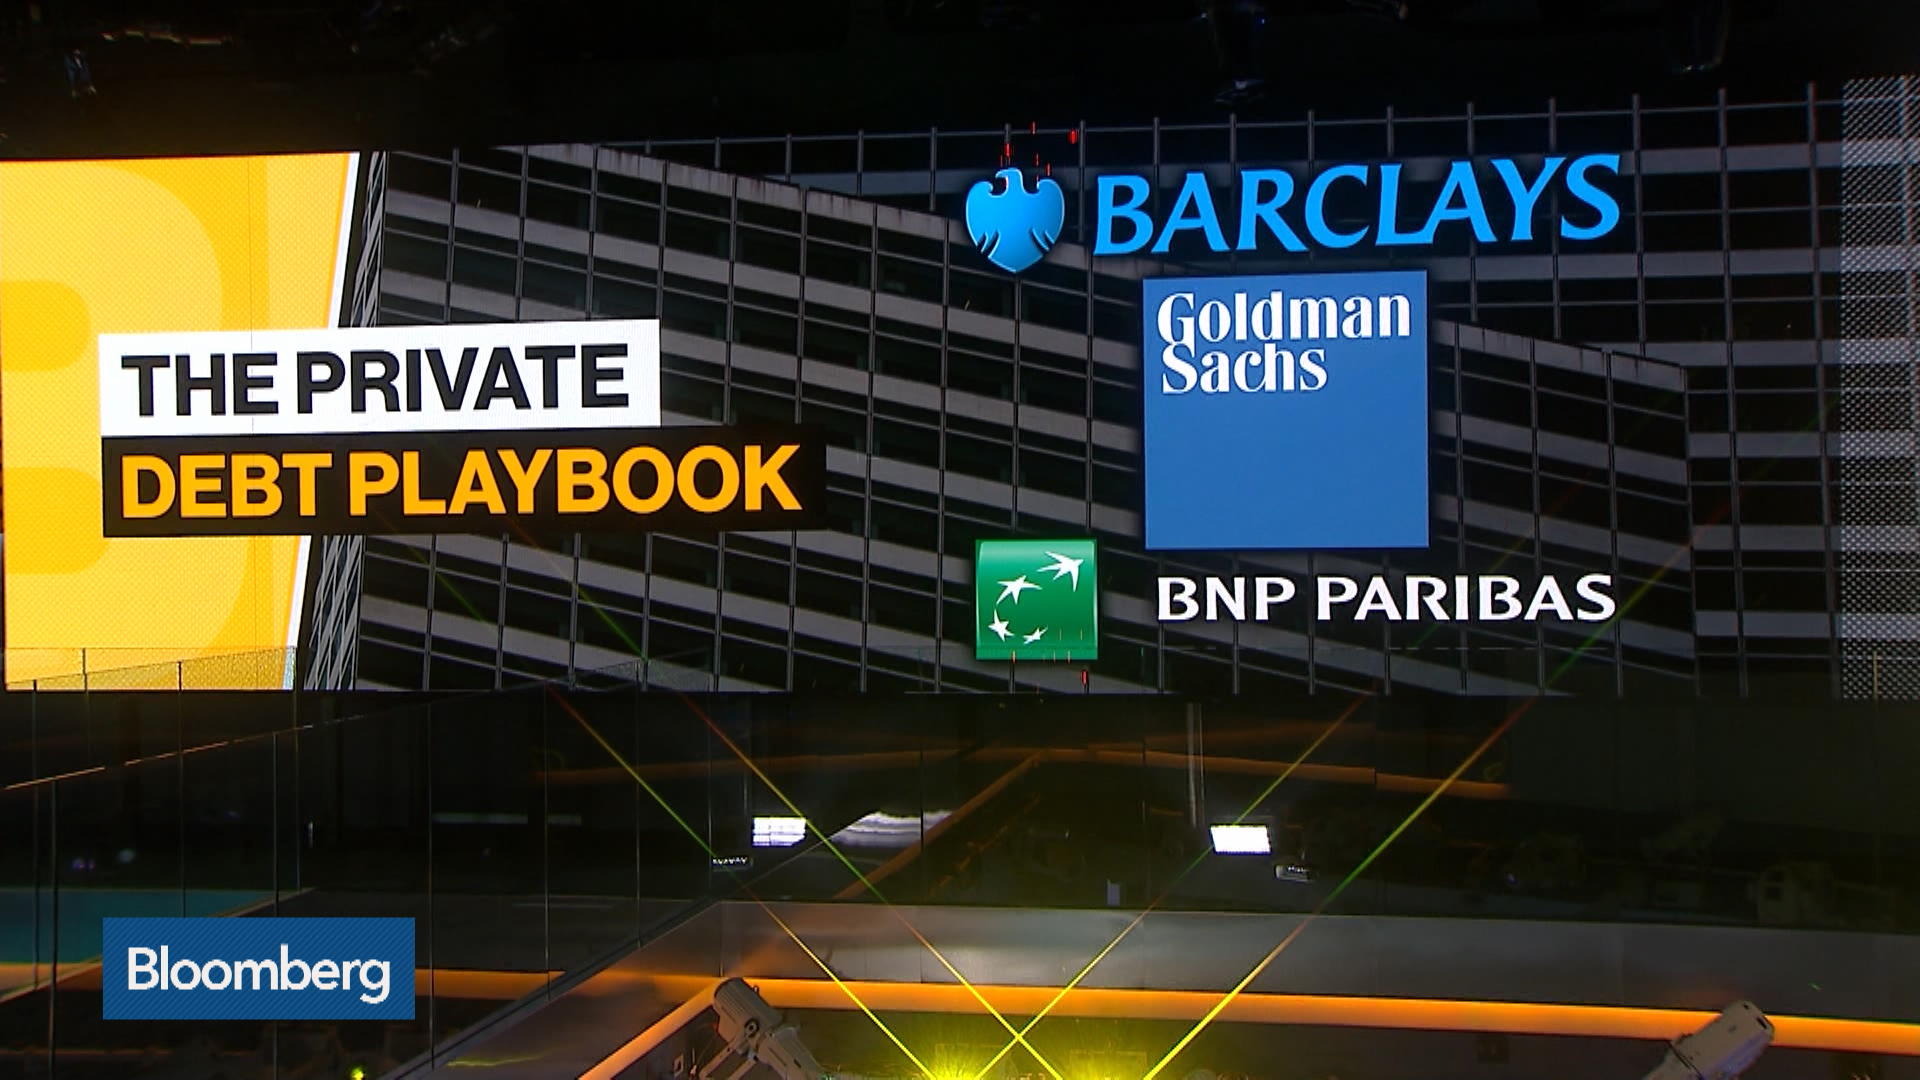 BNP, Barclays Eye Direct Lending